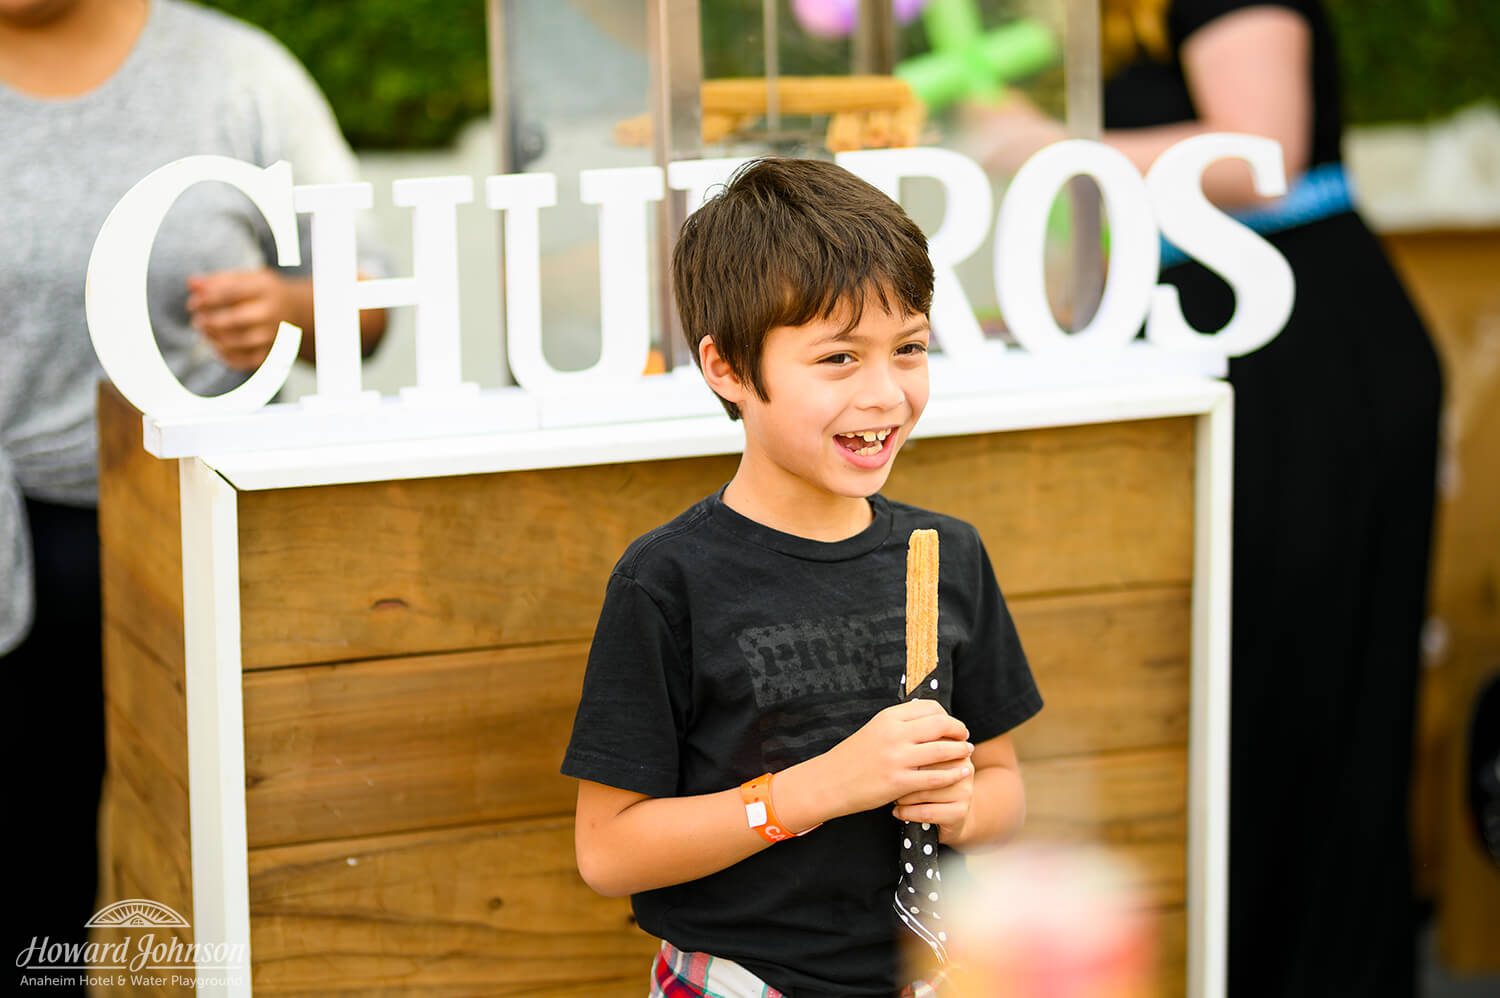 A young boy smiles with a churro in his hand in front of a sign for churros